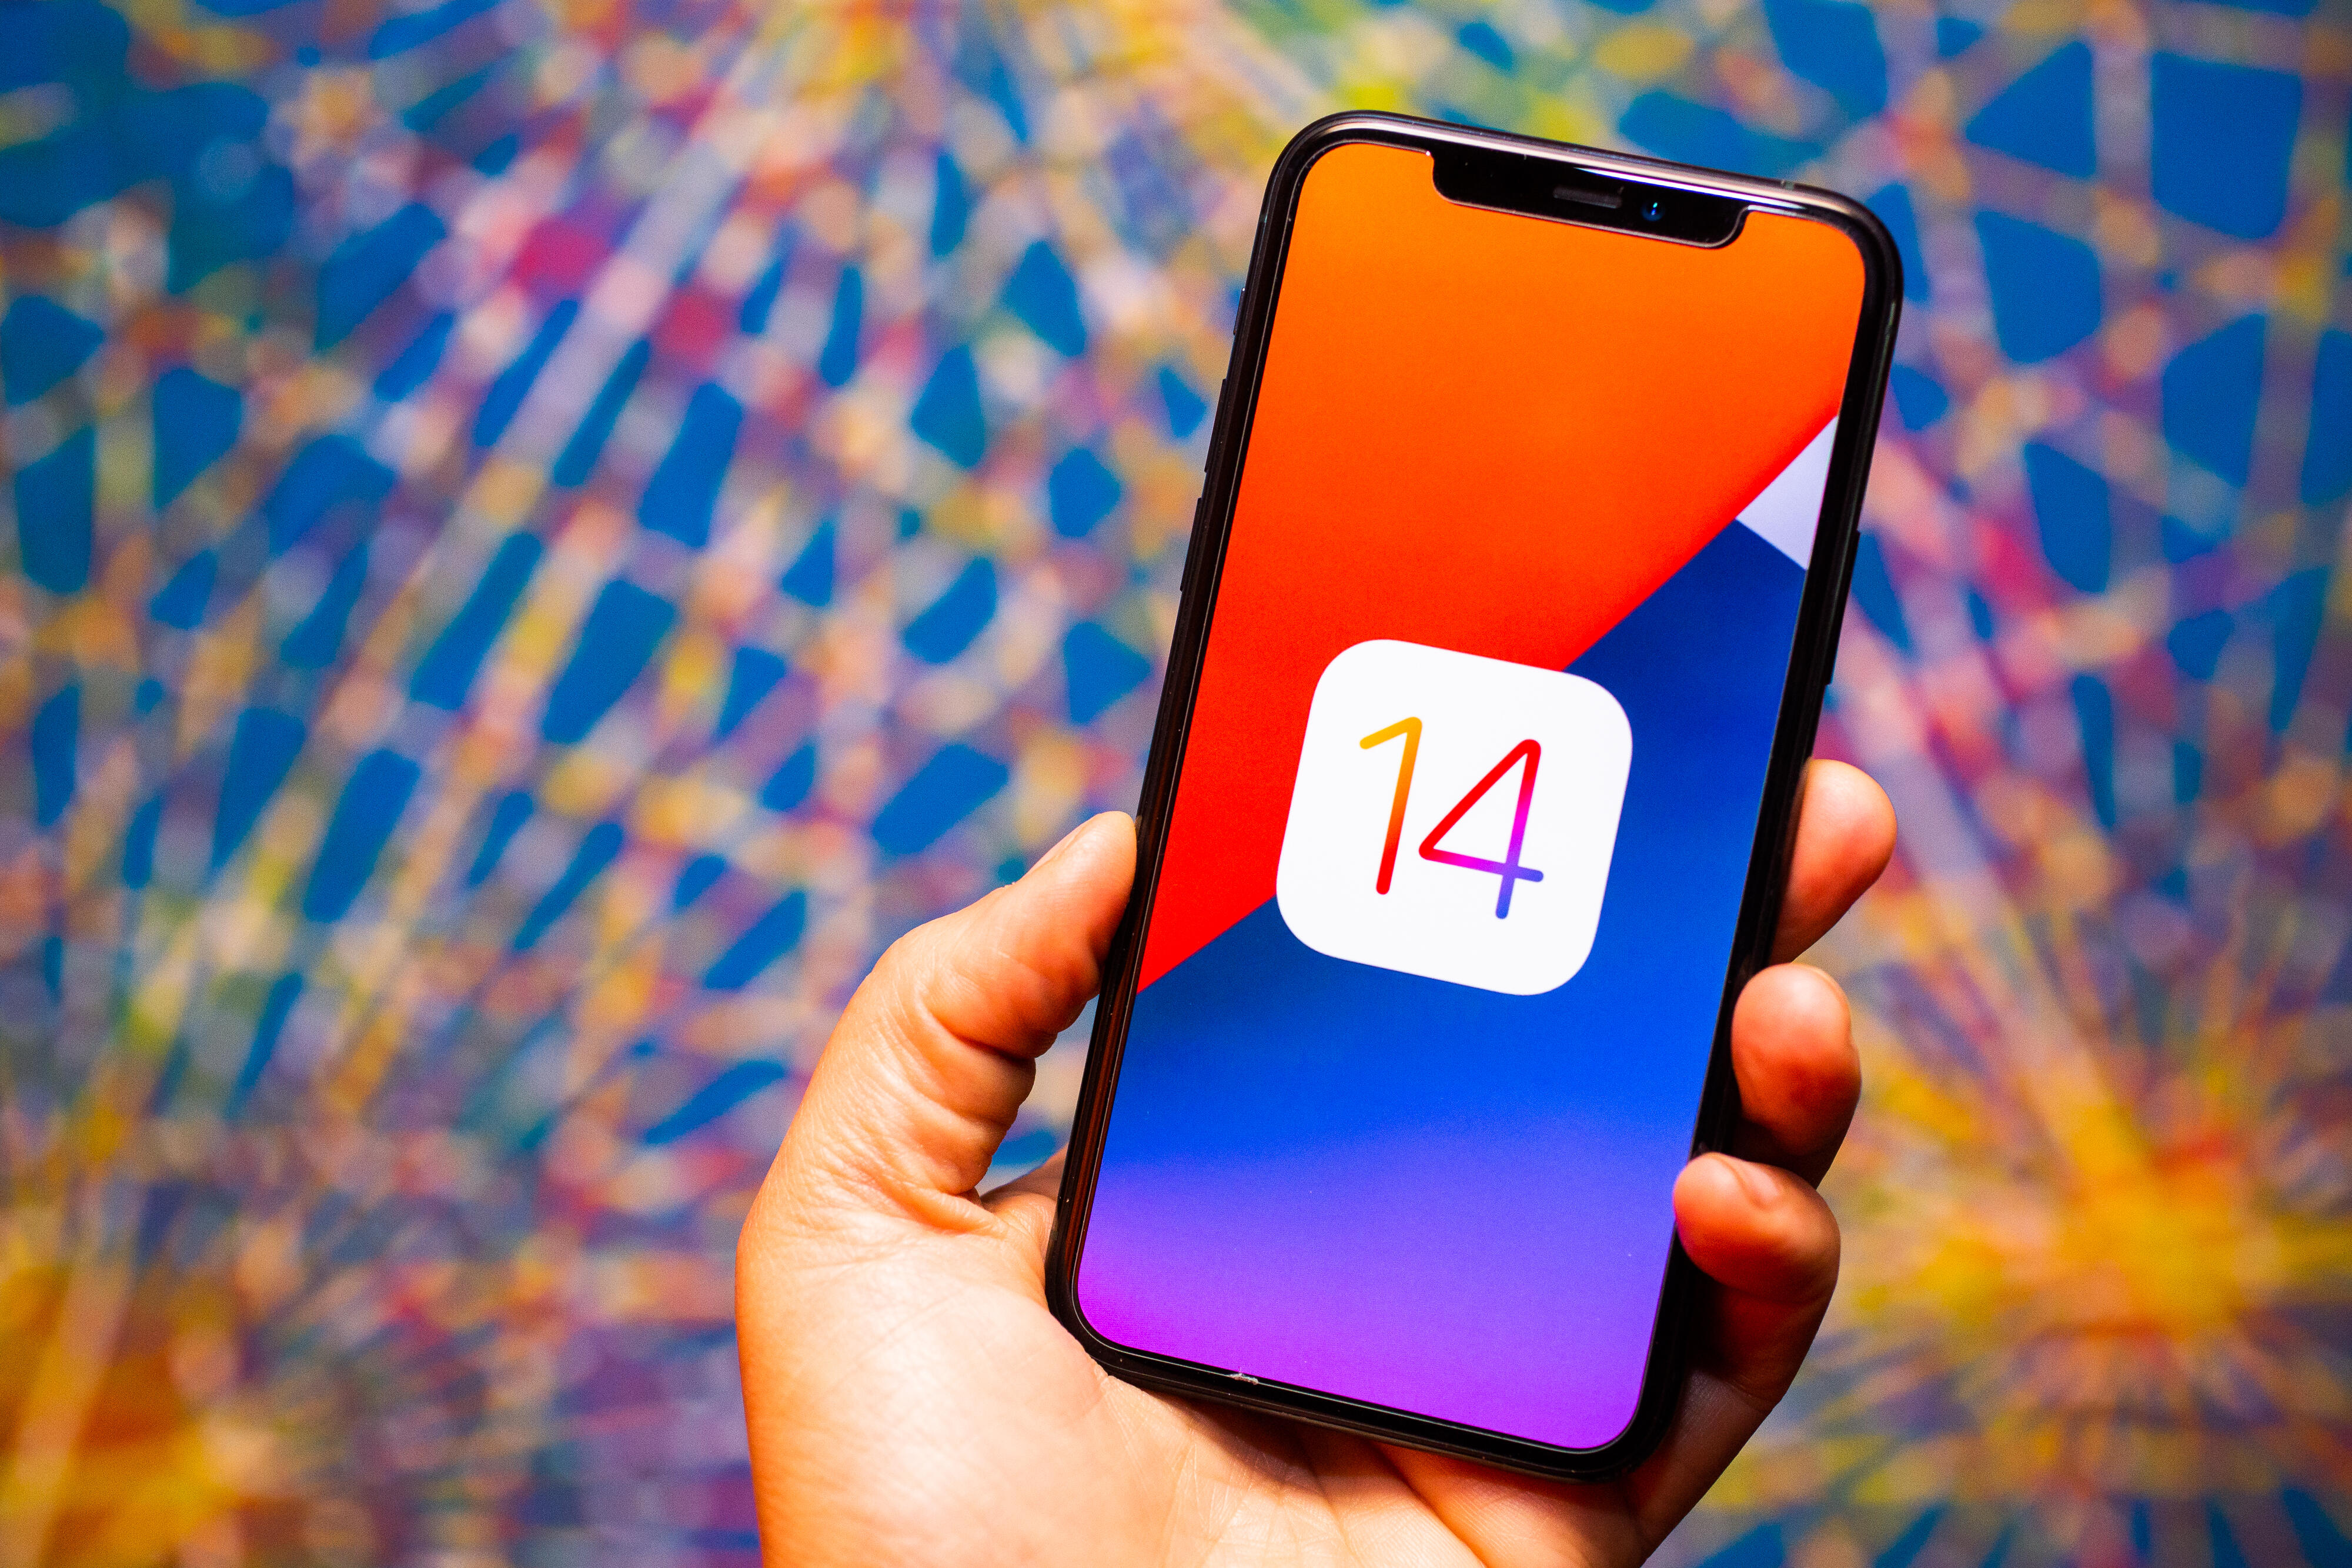 115-how-to-update-iphone-to-ios-14-5